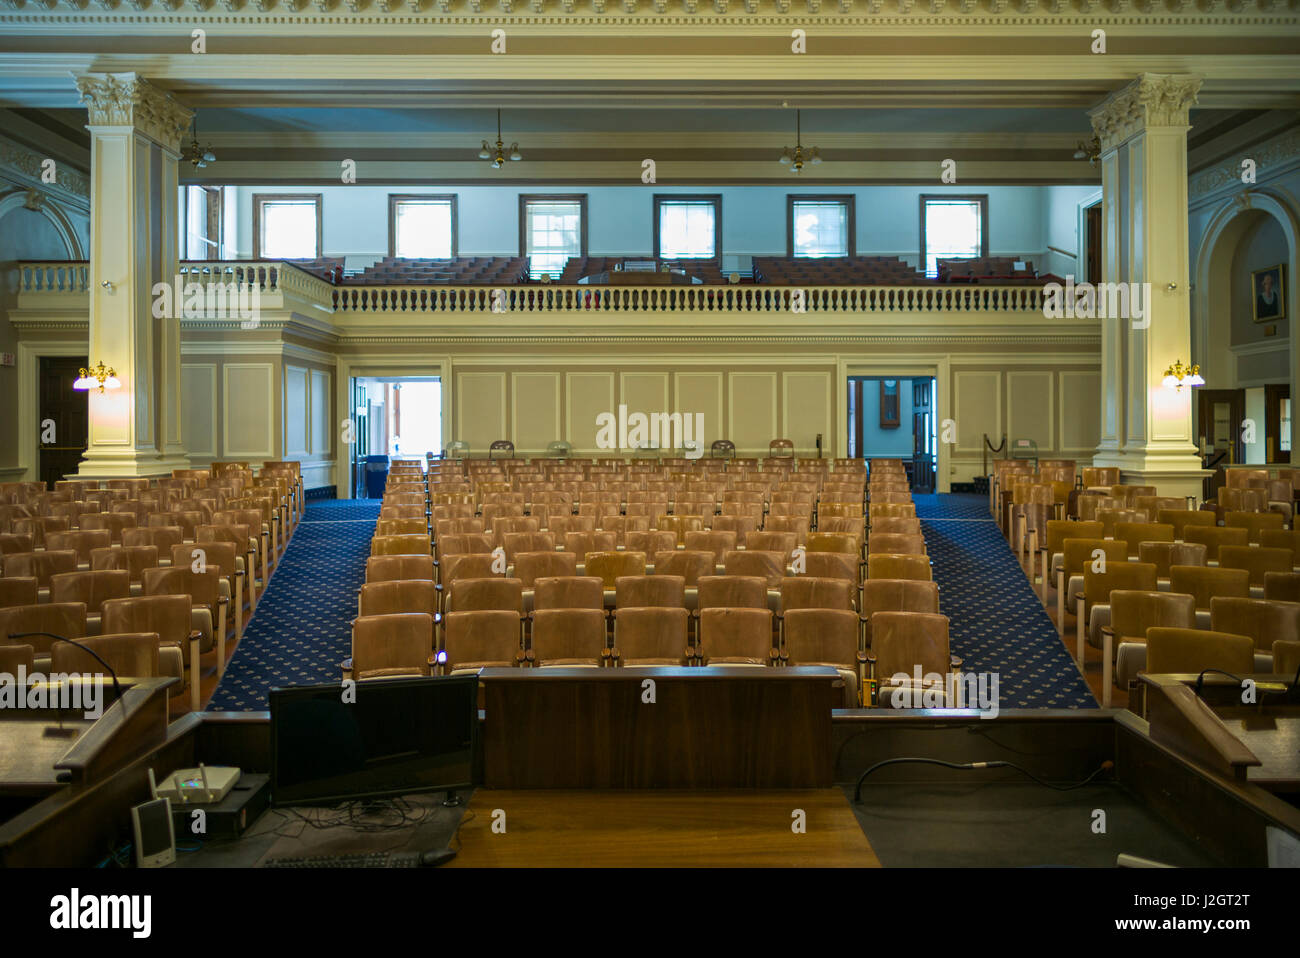 USA, New Hampshire, Concord, New Hampshire State House, interior of the chamber of the state house of representatives - Stock Image